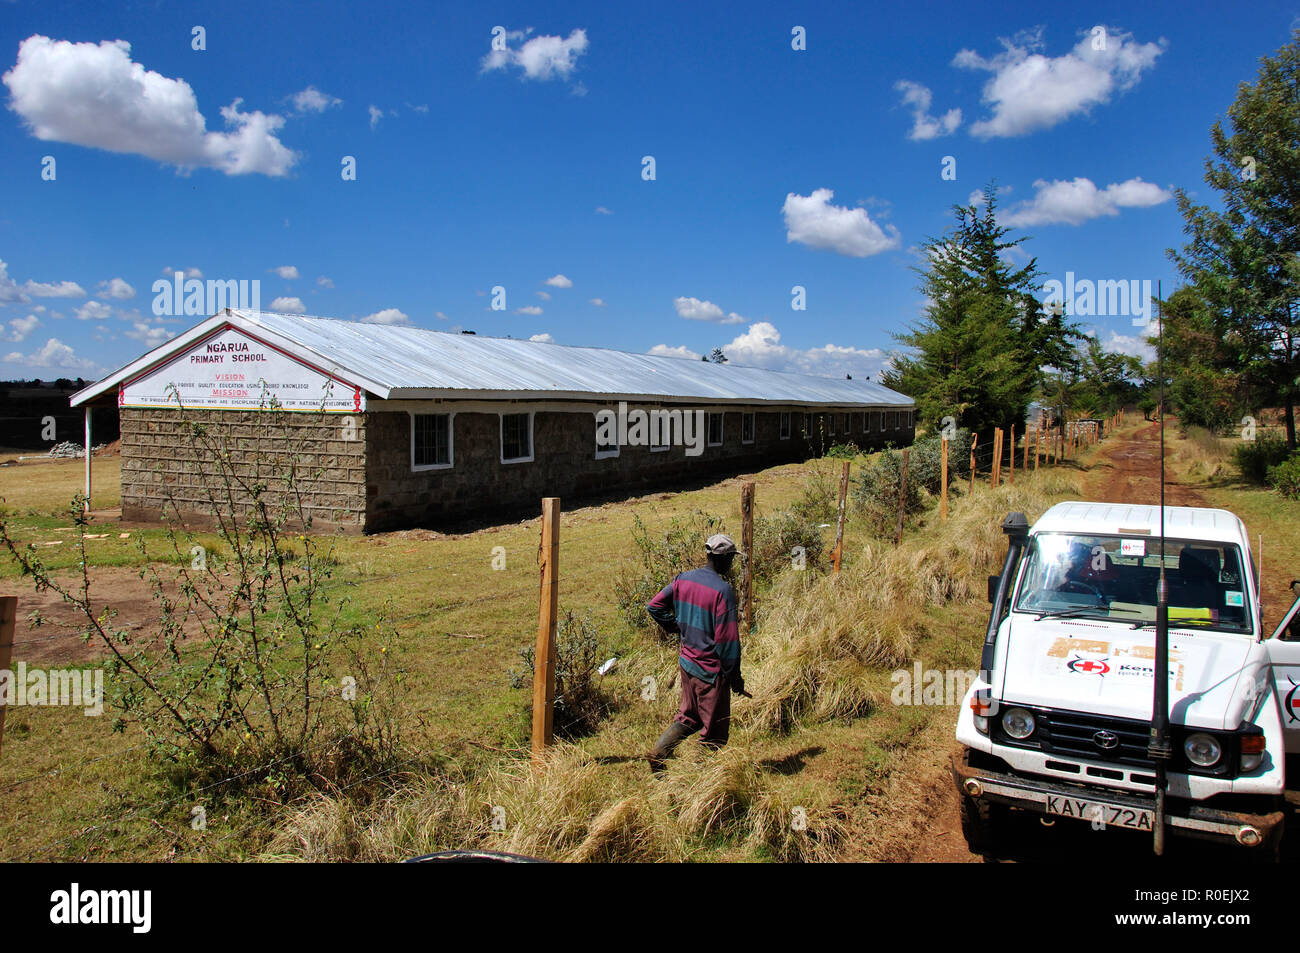 One out of four schools rebuilt by the Kenya Red Cross in Eldoret in the Rift Valley Stock Photo